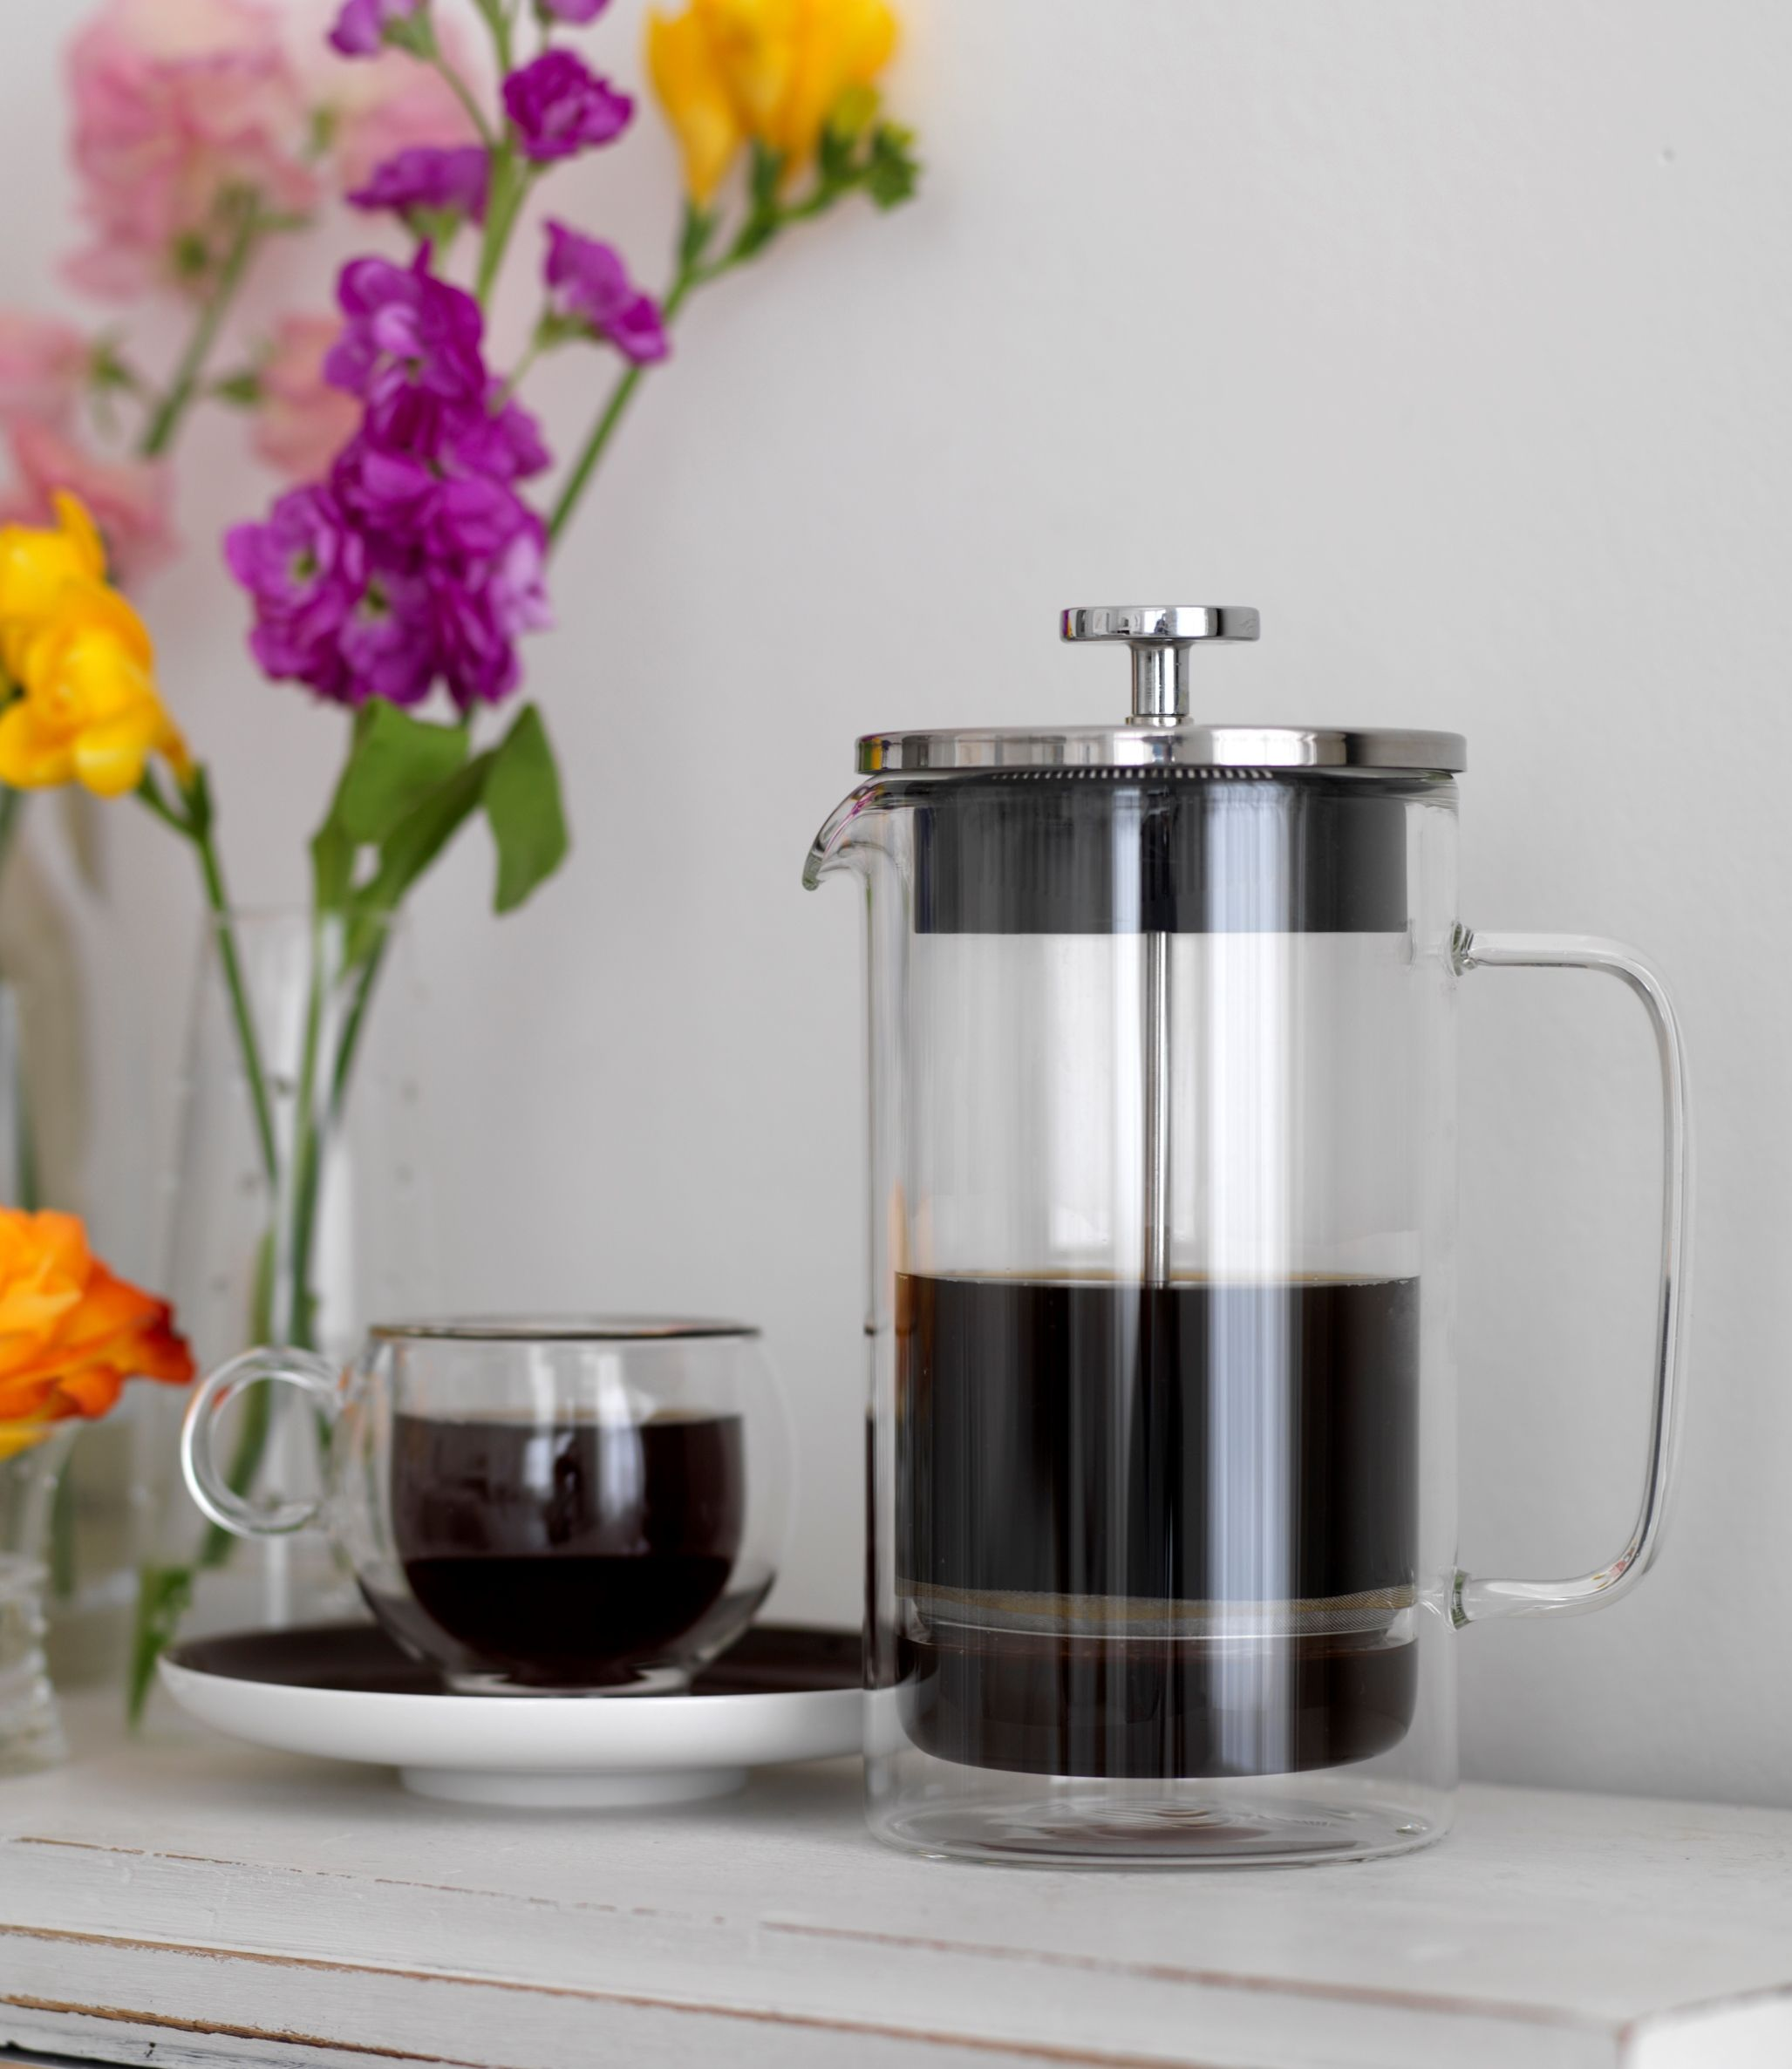 French coffee press from la cafetiere coffee french